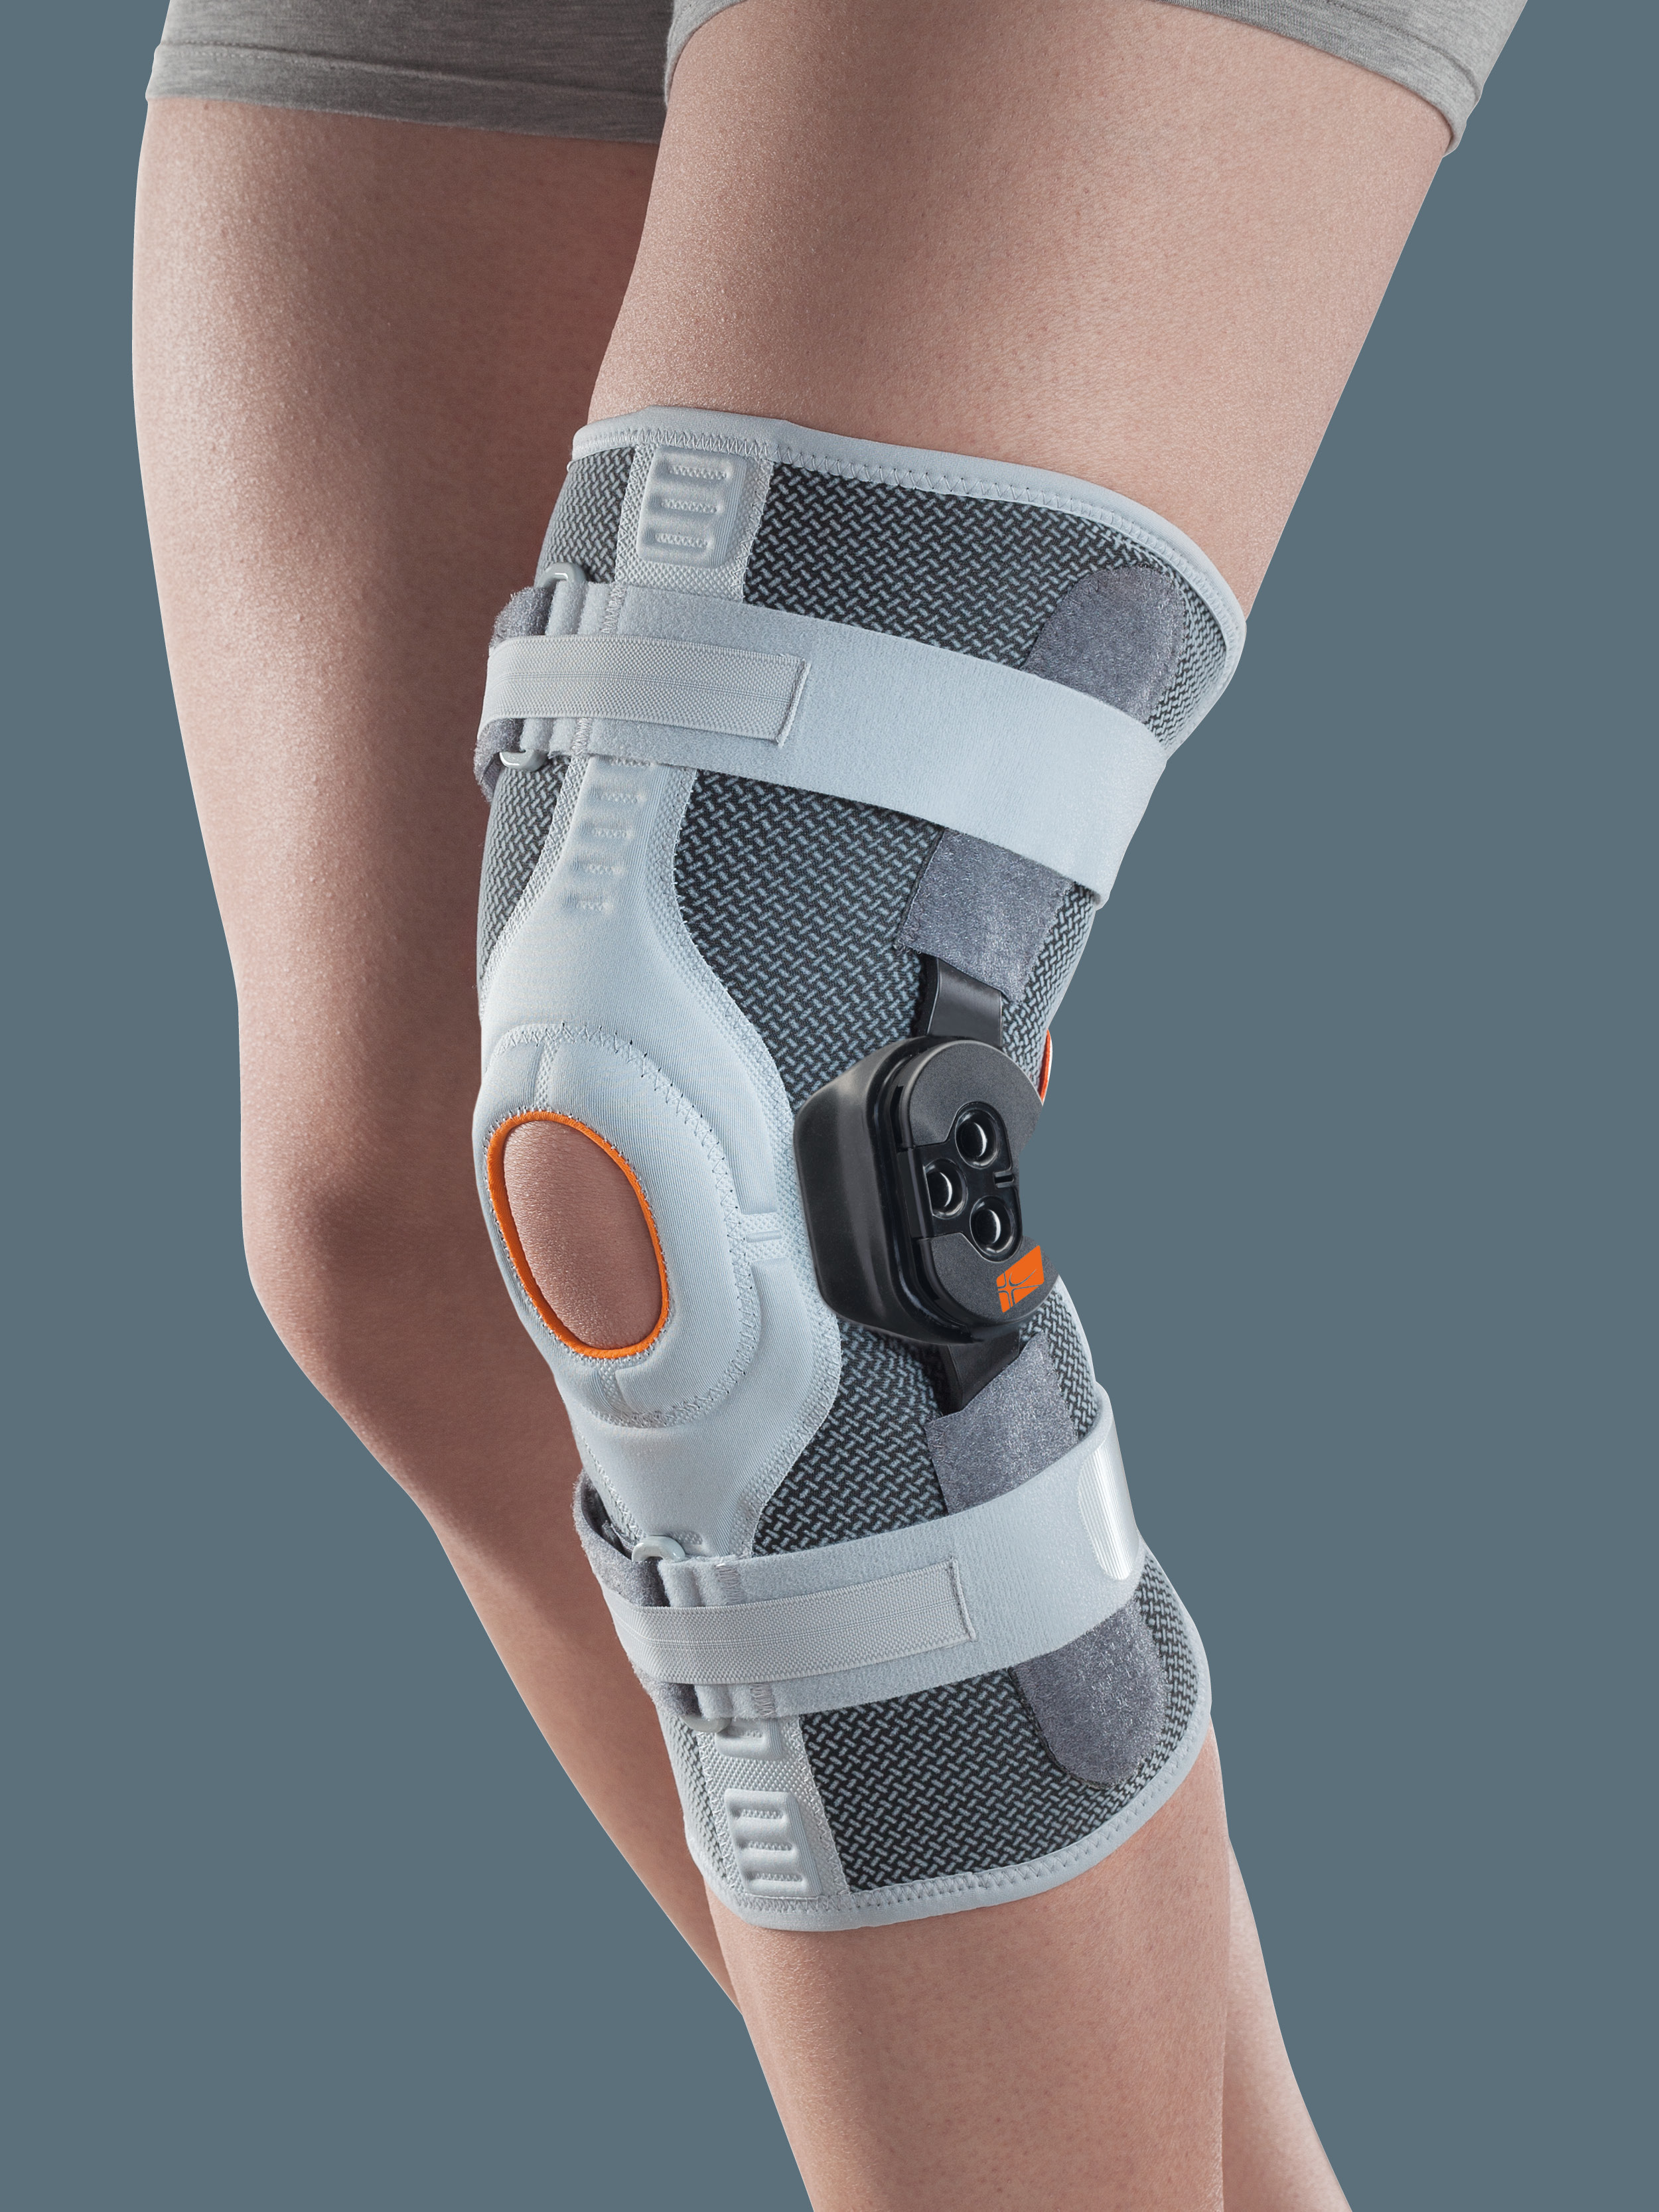 GENUSKILL 22 - Knee orthosis with hinges and F-E control, short tubular